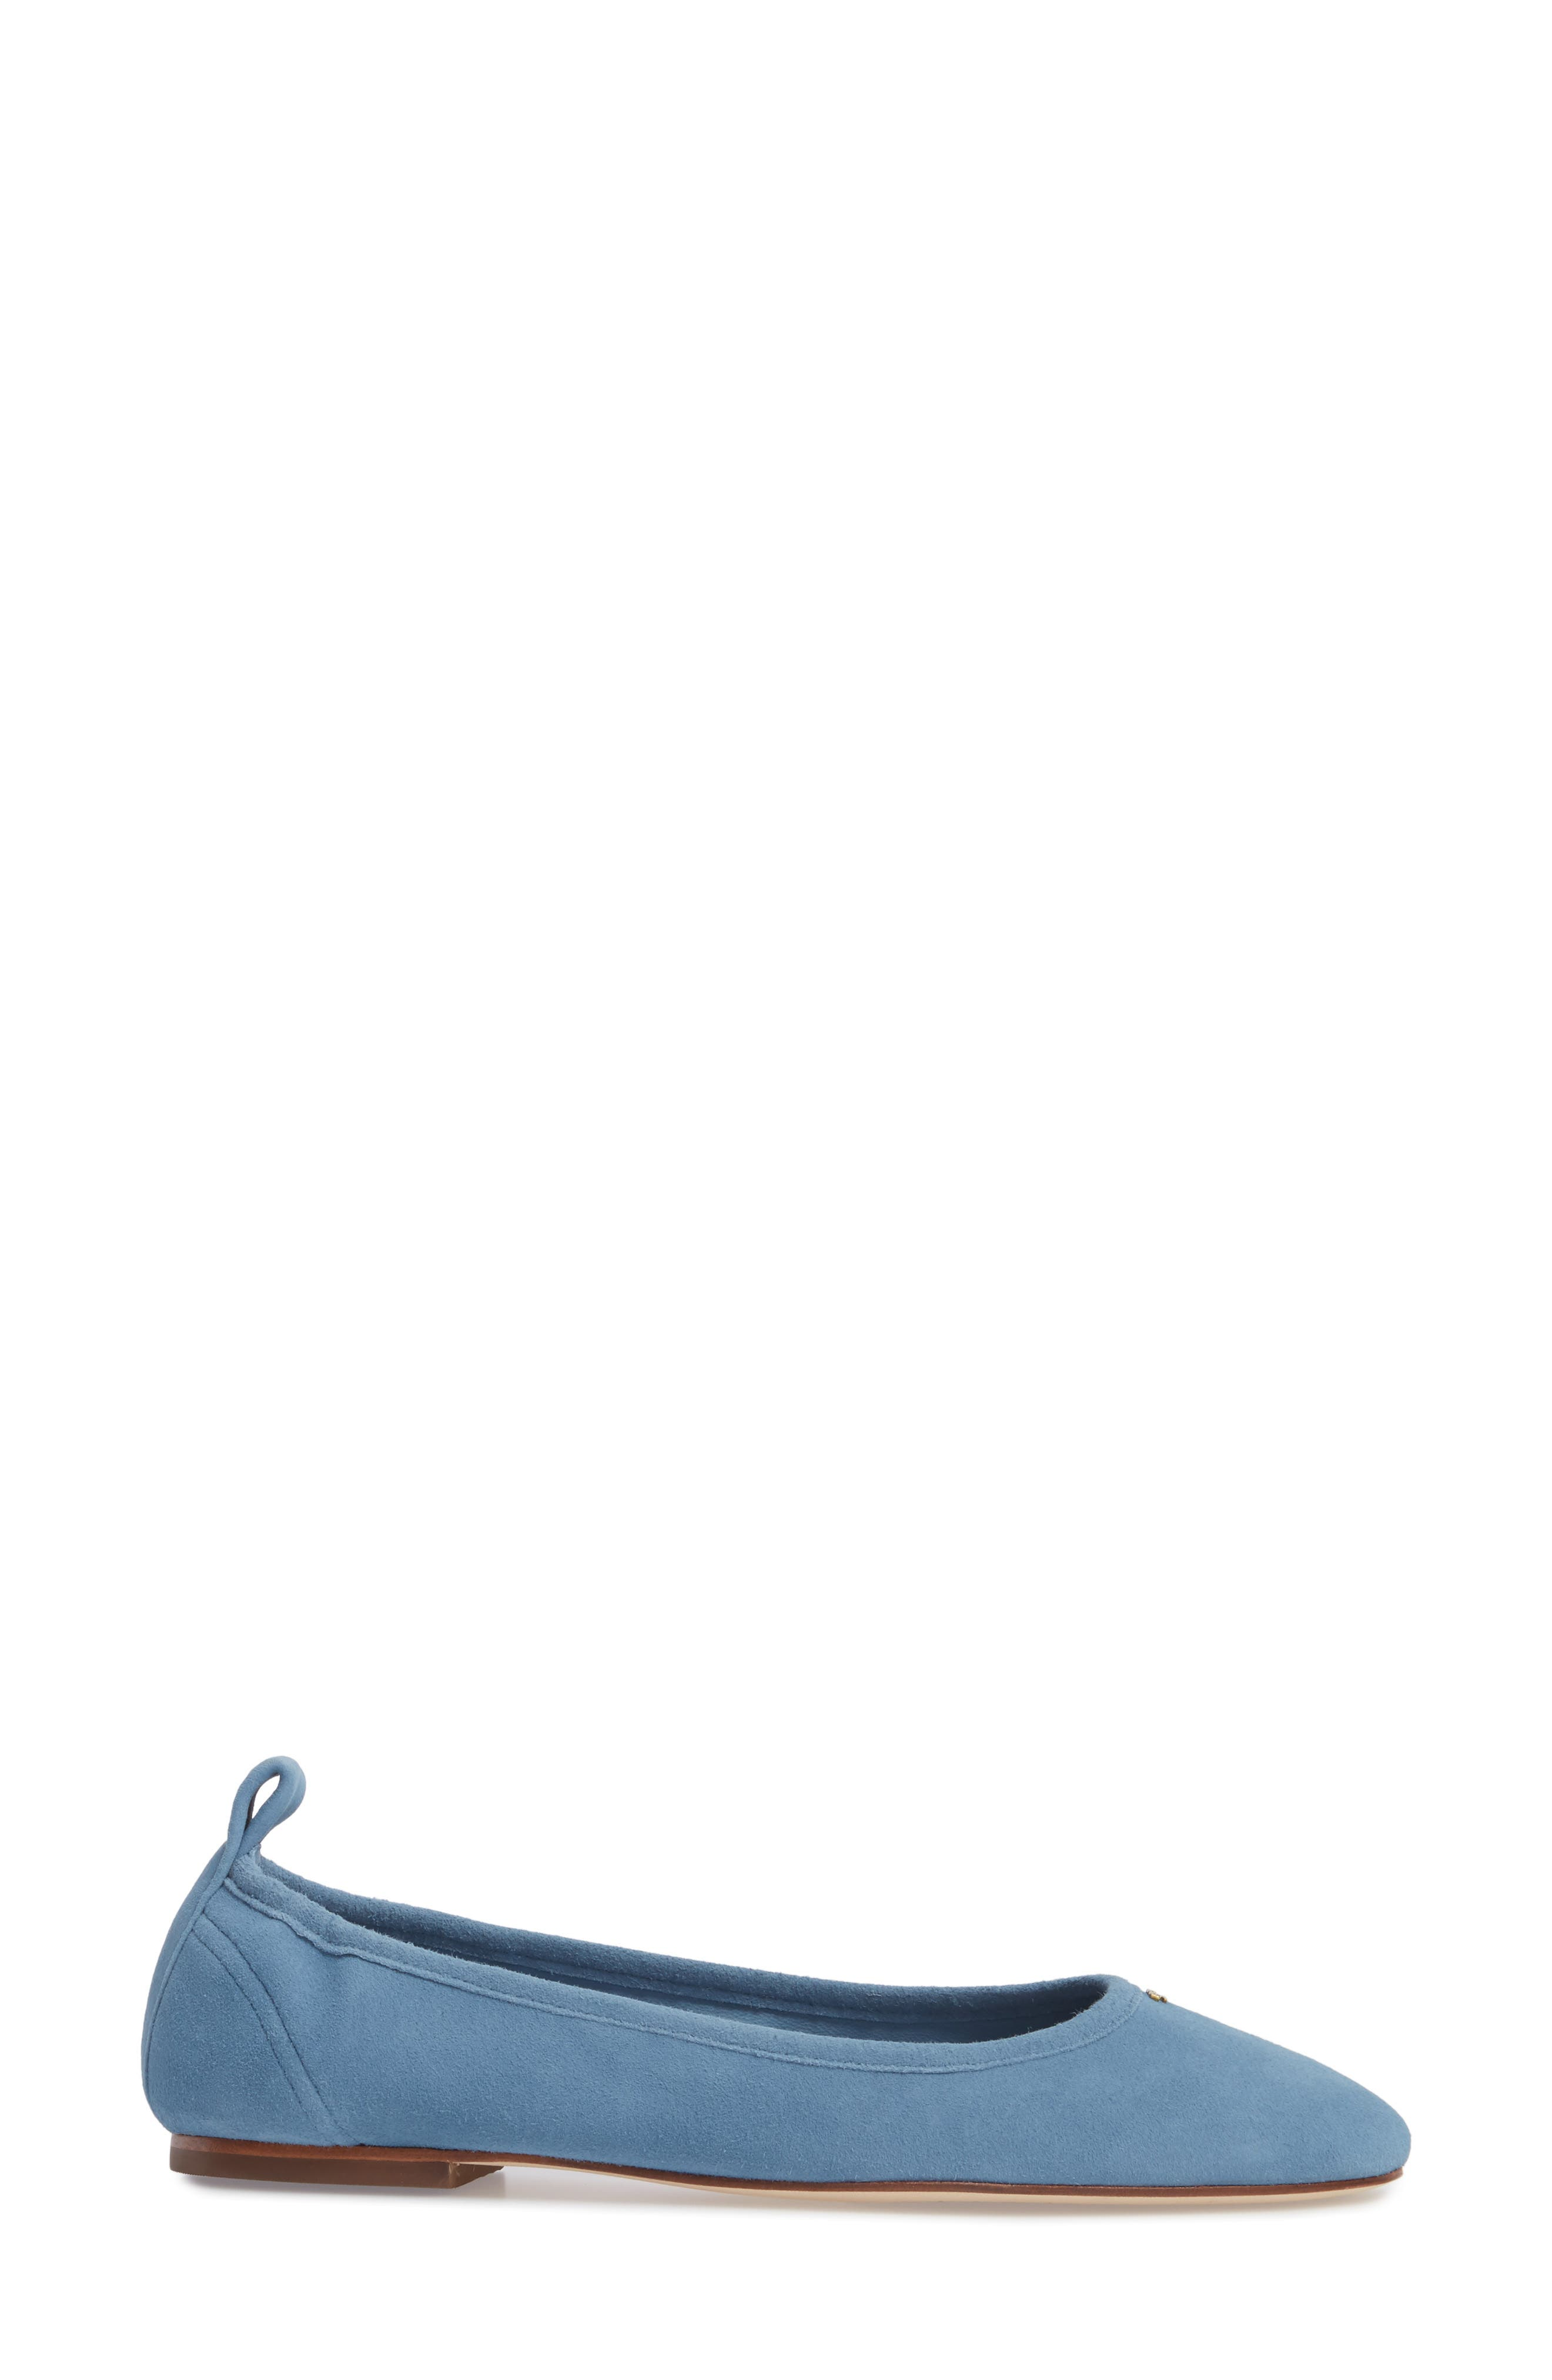 Therese Ballet Flat,                             Alternate thumbnail 3, color,                             Blue Yonder